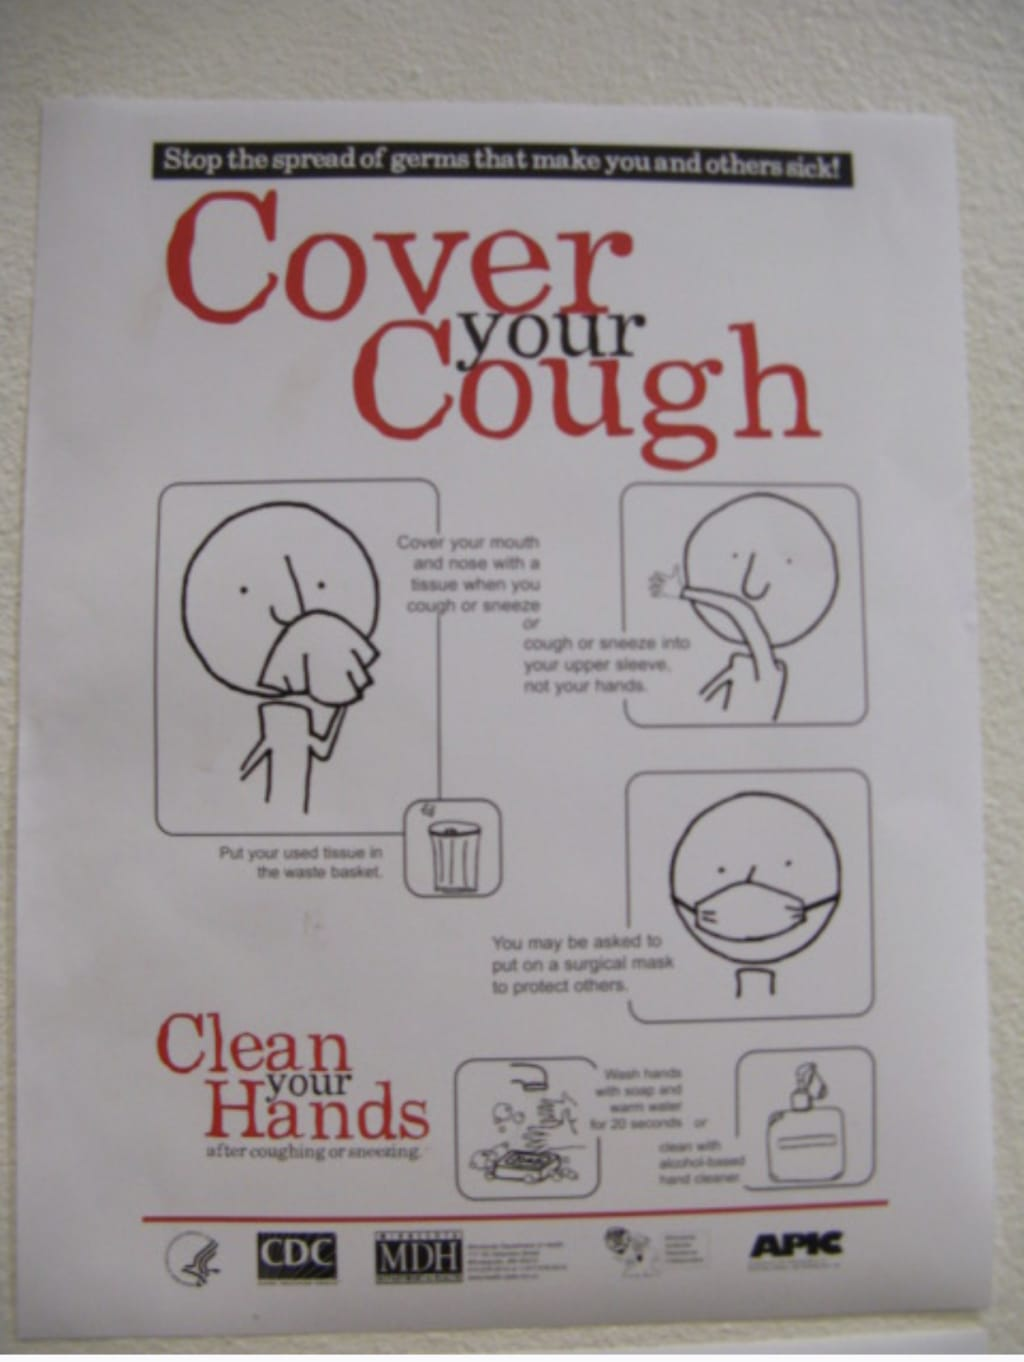 Reason First: How Can a Cough Lead to an Arrest?